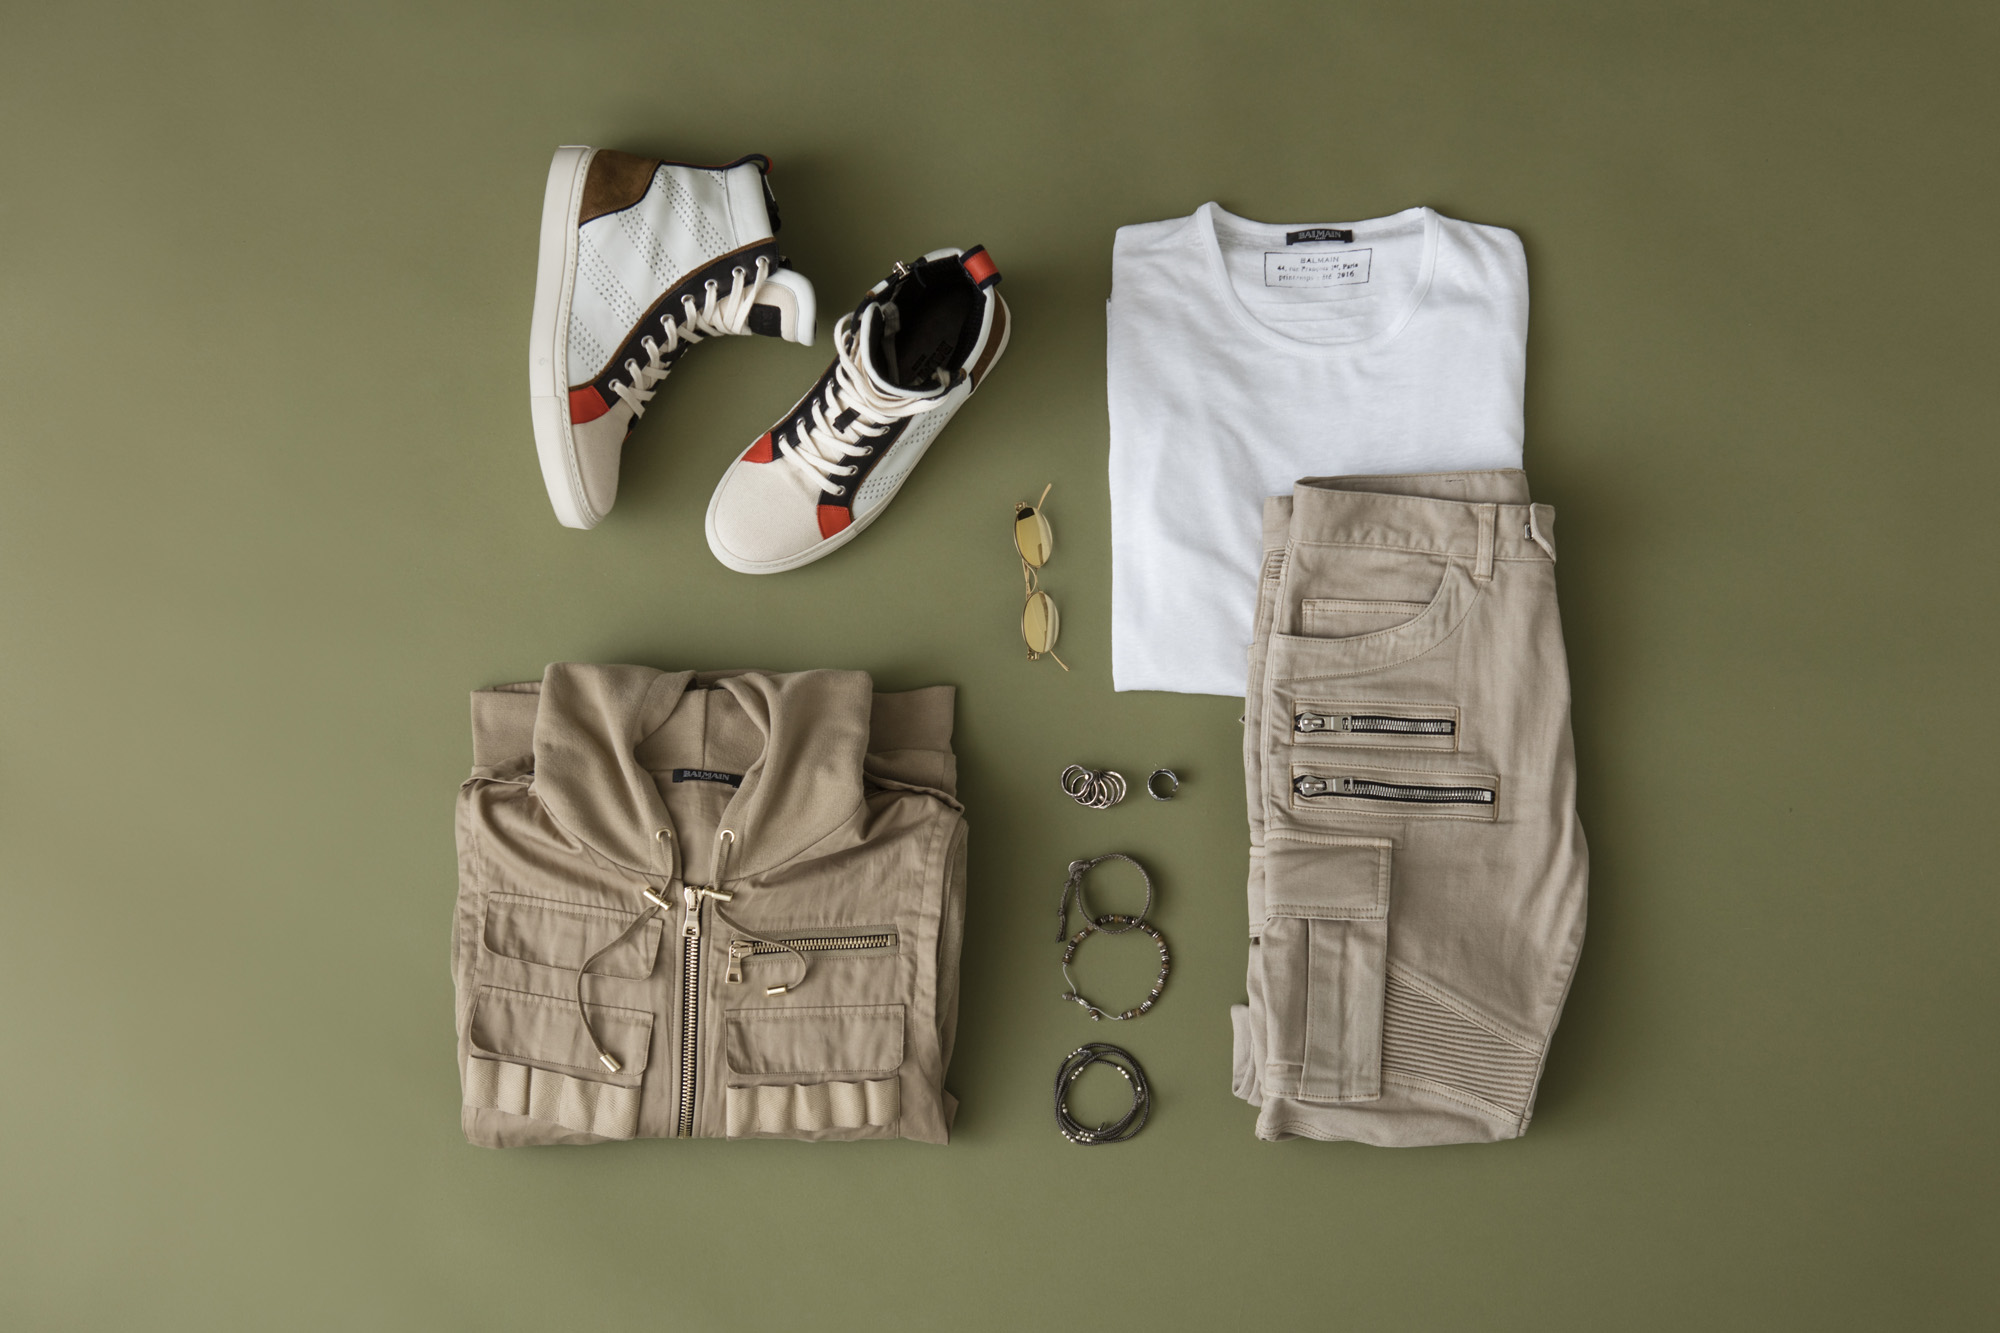 d89bc471b1 balmain outfit of the day fashion blog. Pierre ...